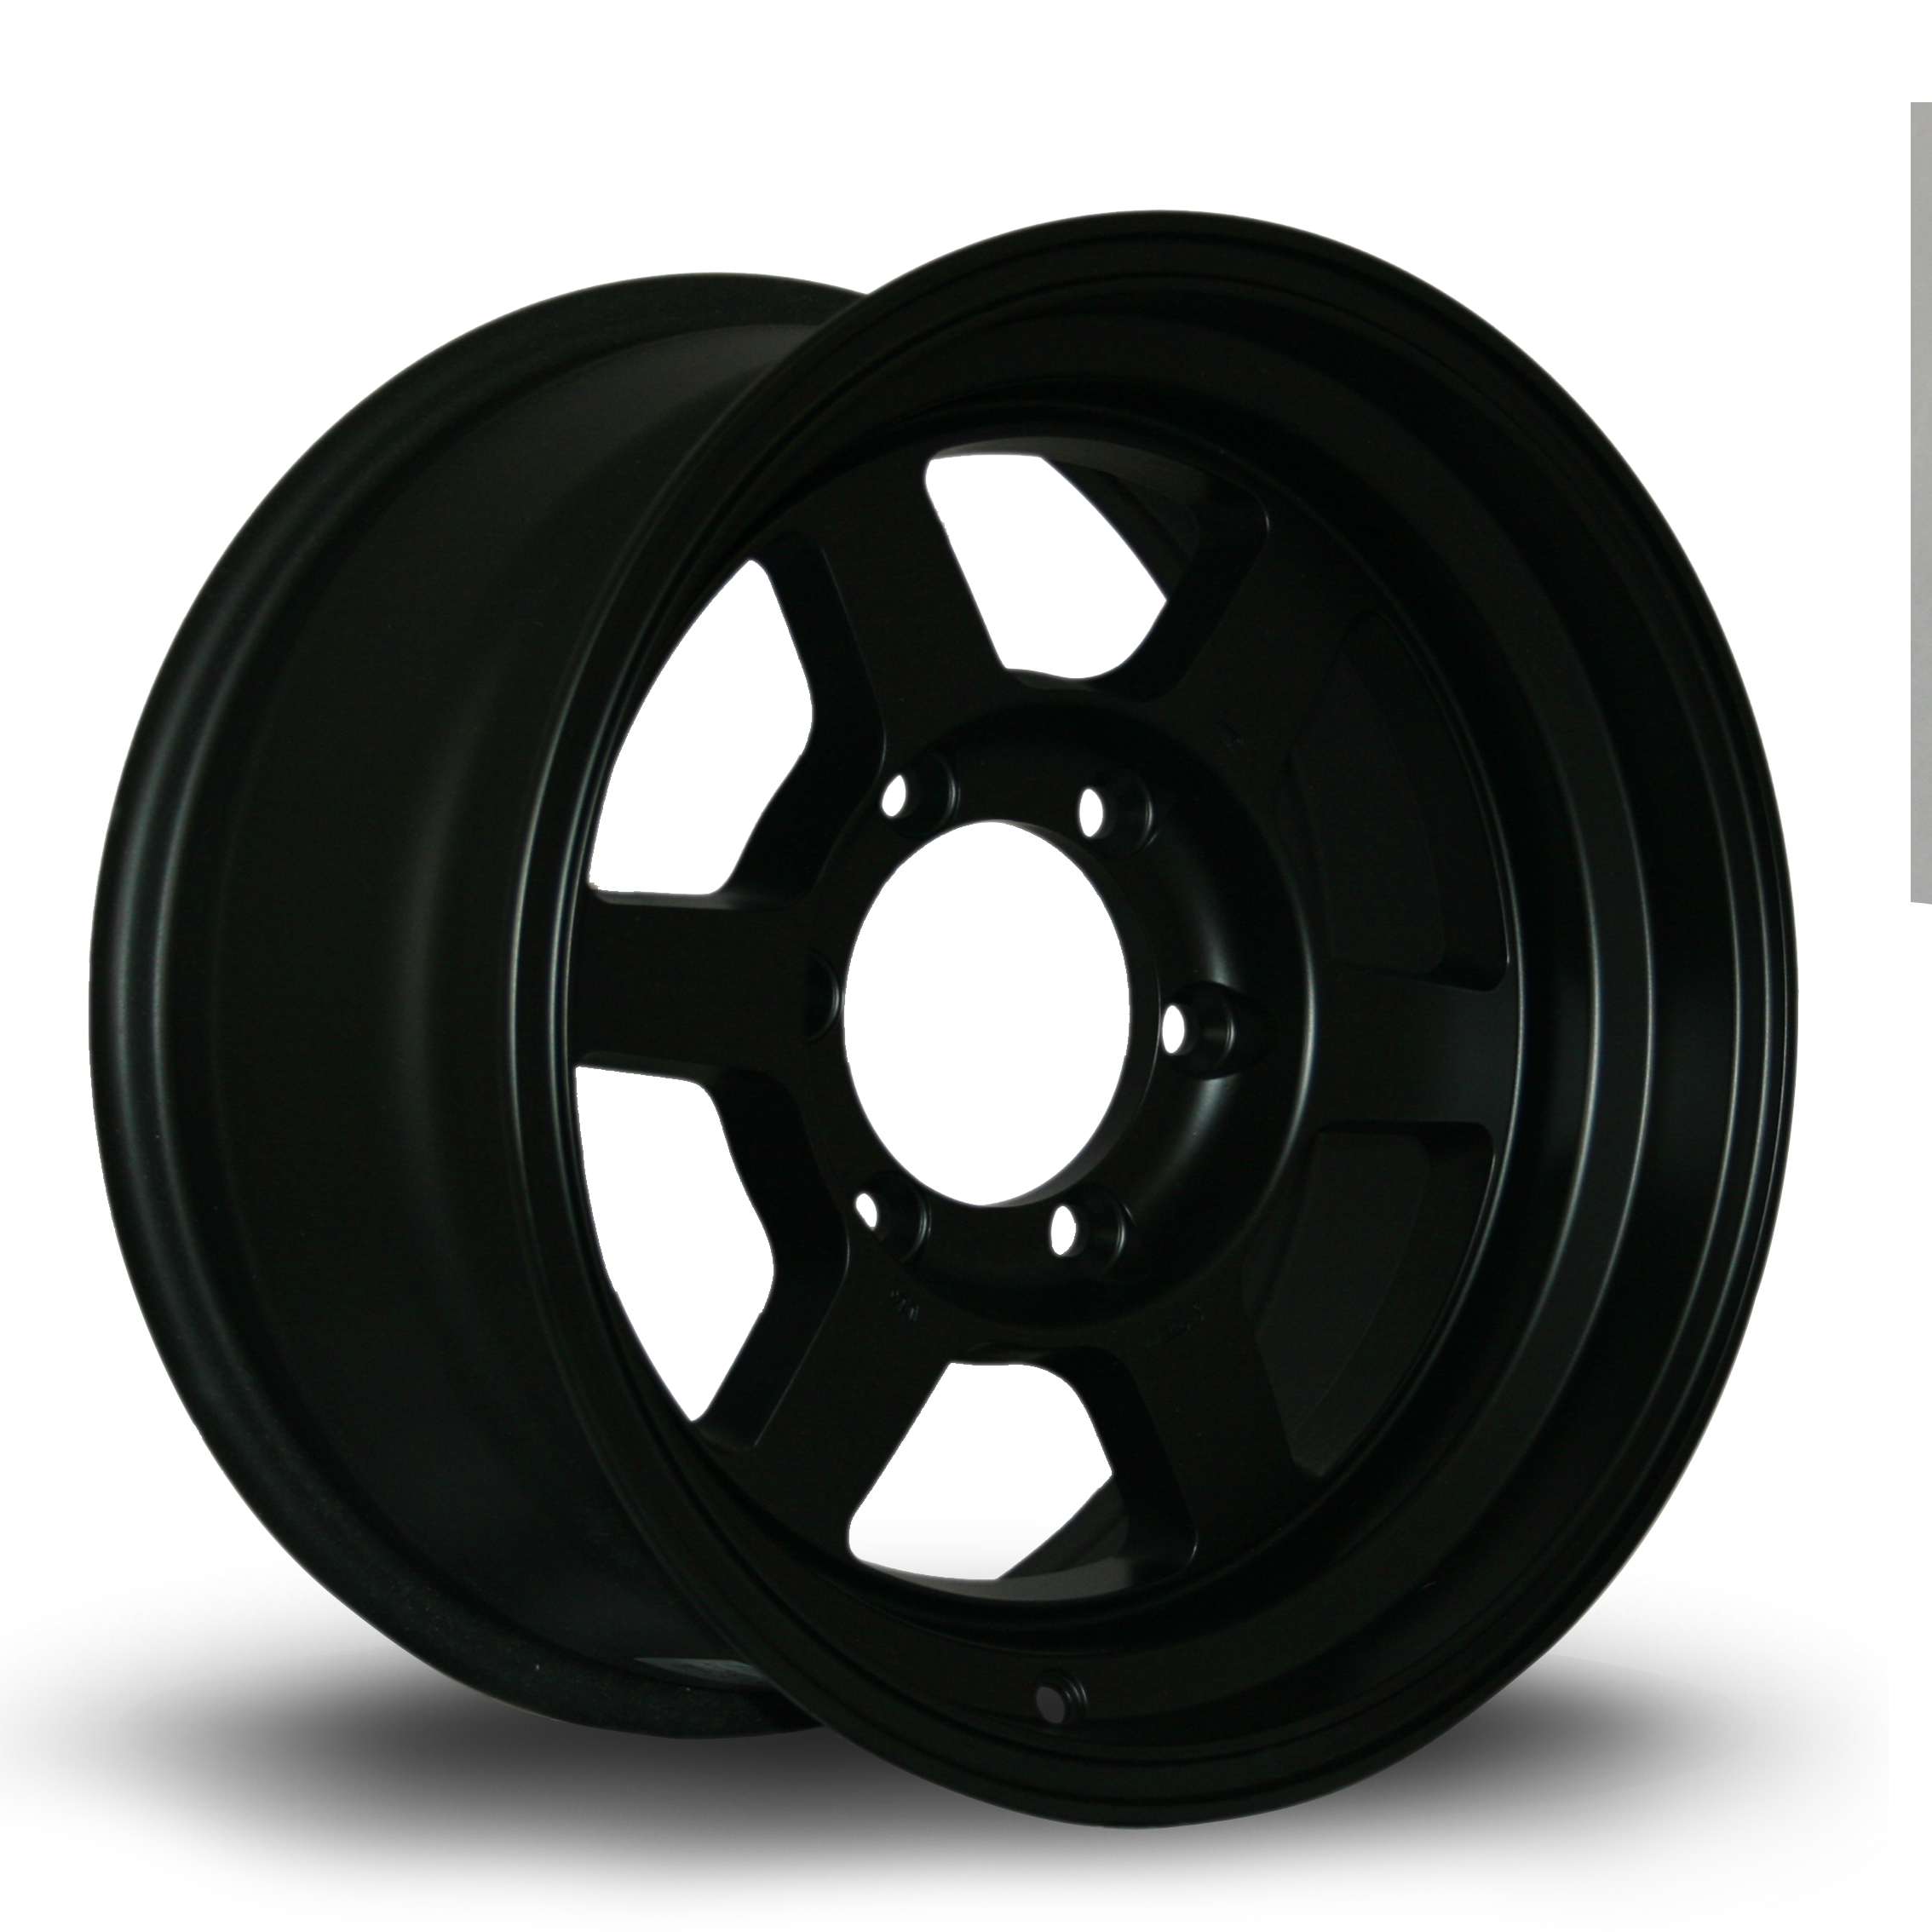 Rota Grid Offroad wheels